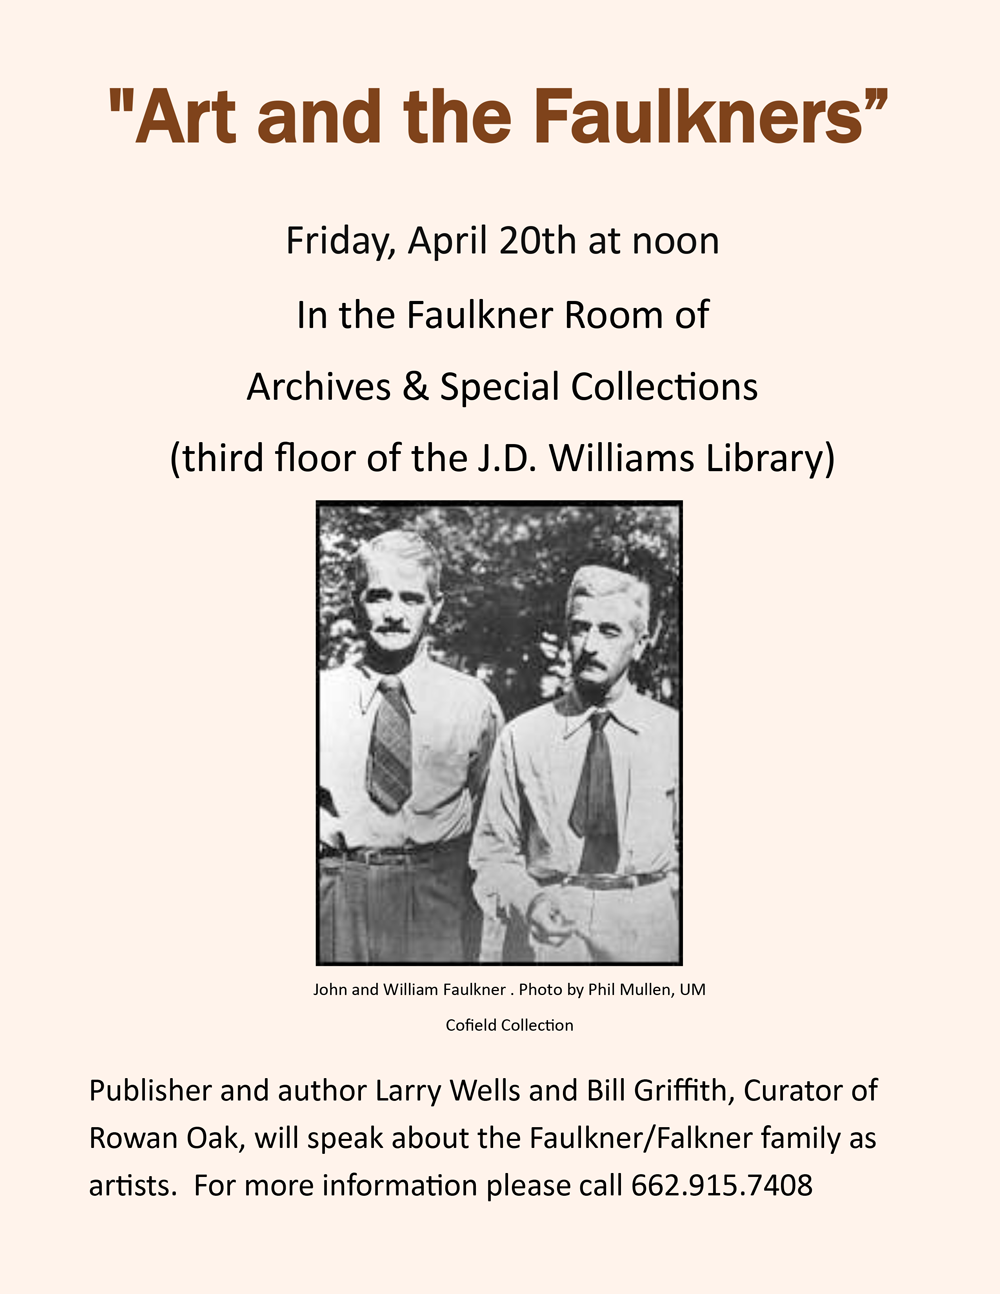 Faulkner Art in J.D. Williams Library